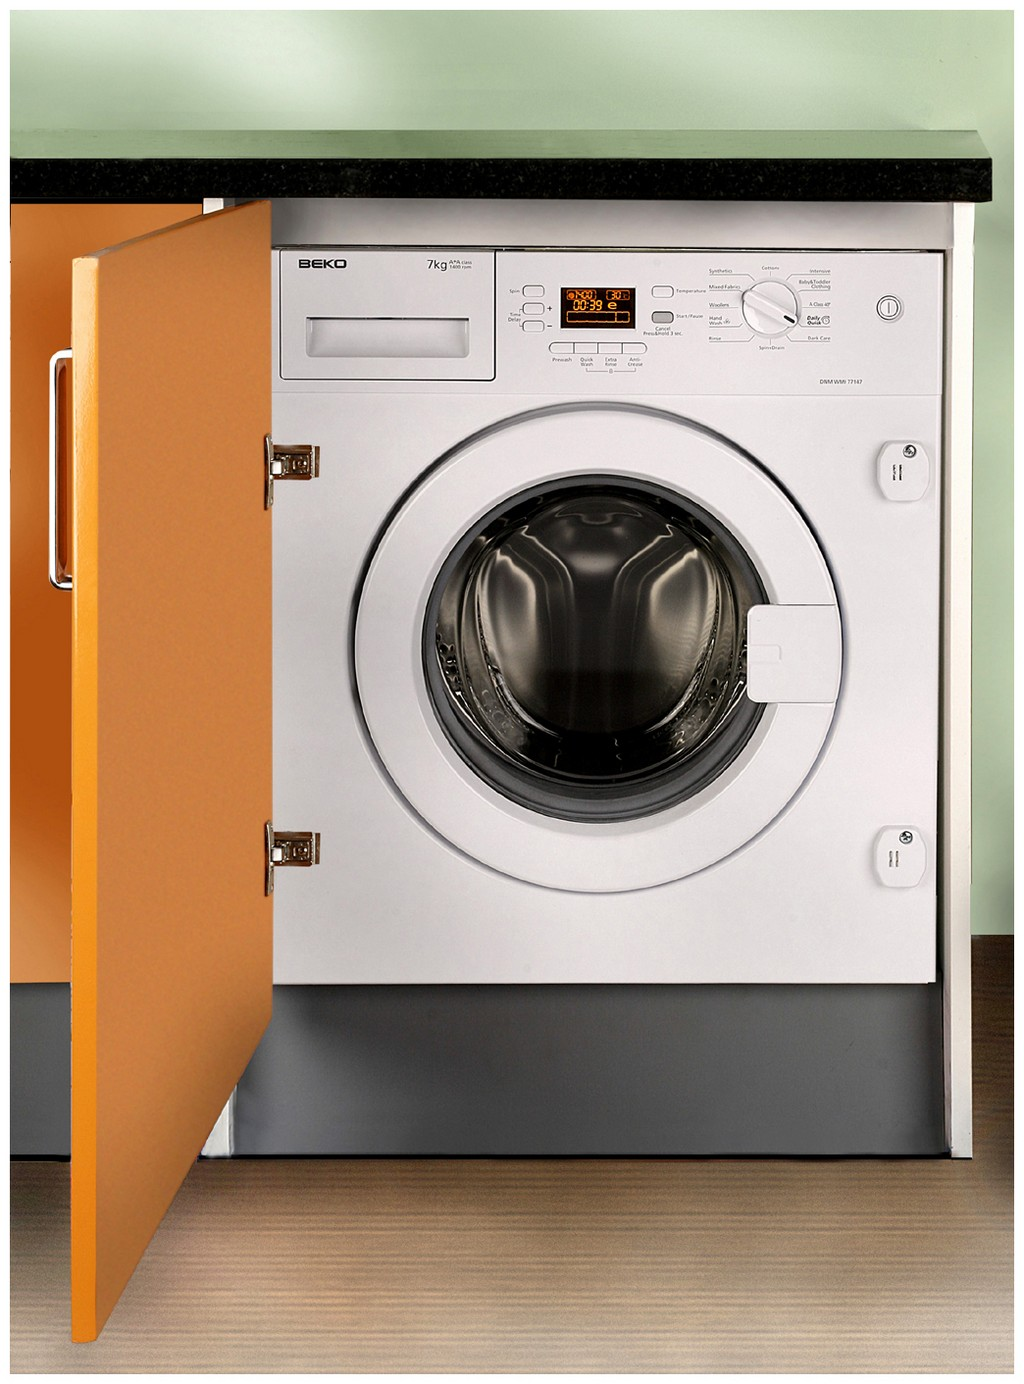 slimline washing machine, washing machine prices, samsung washing machine